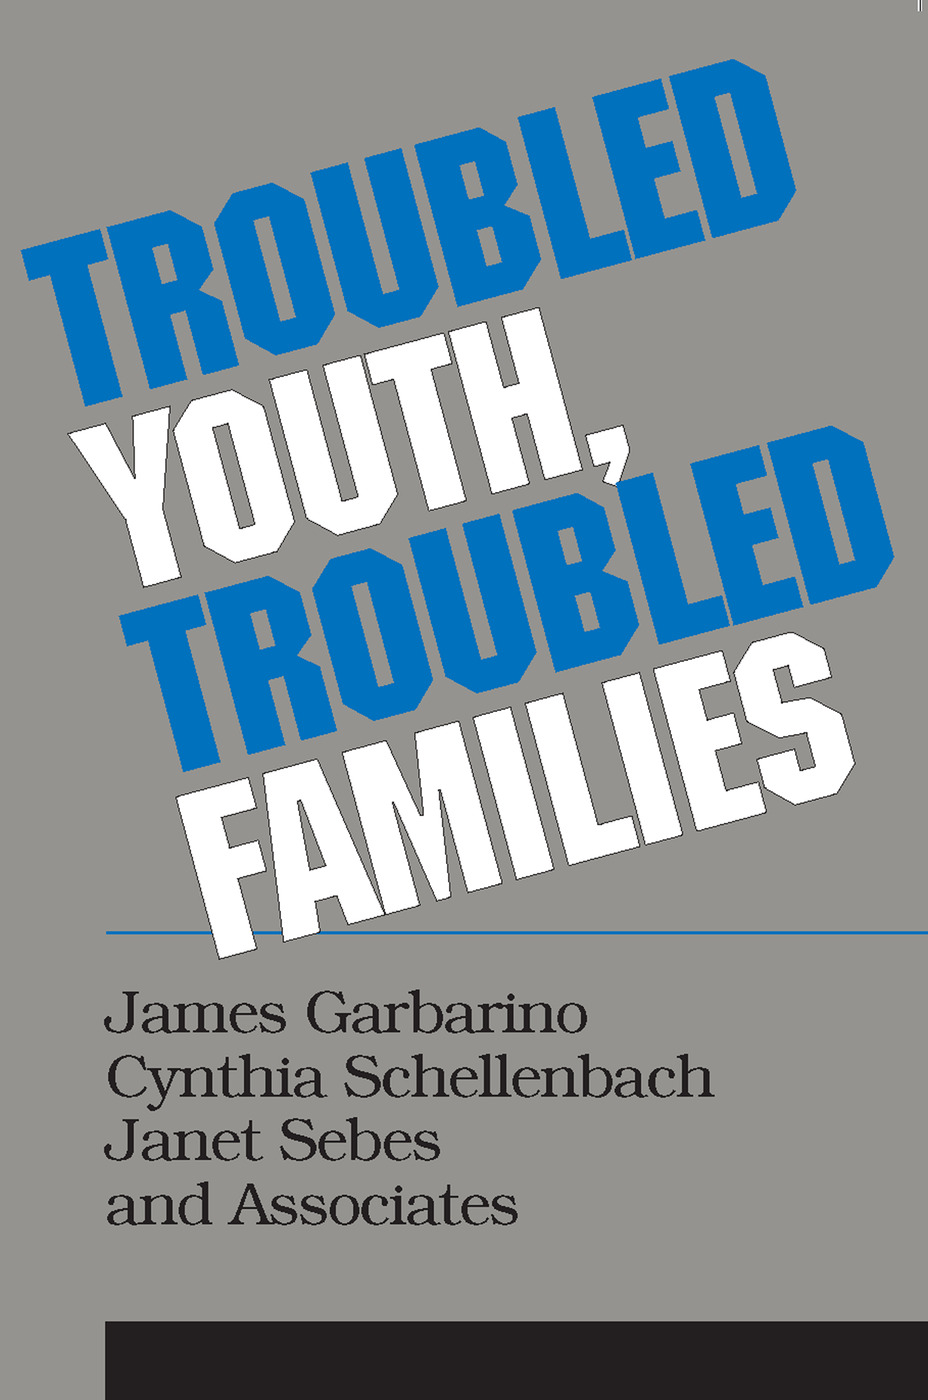 An Introduction to Troubled Youth in Troubled Families